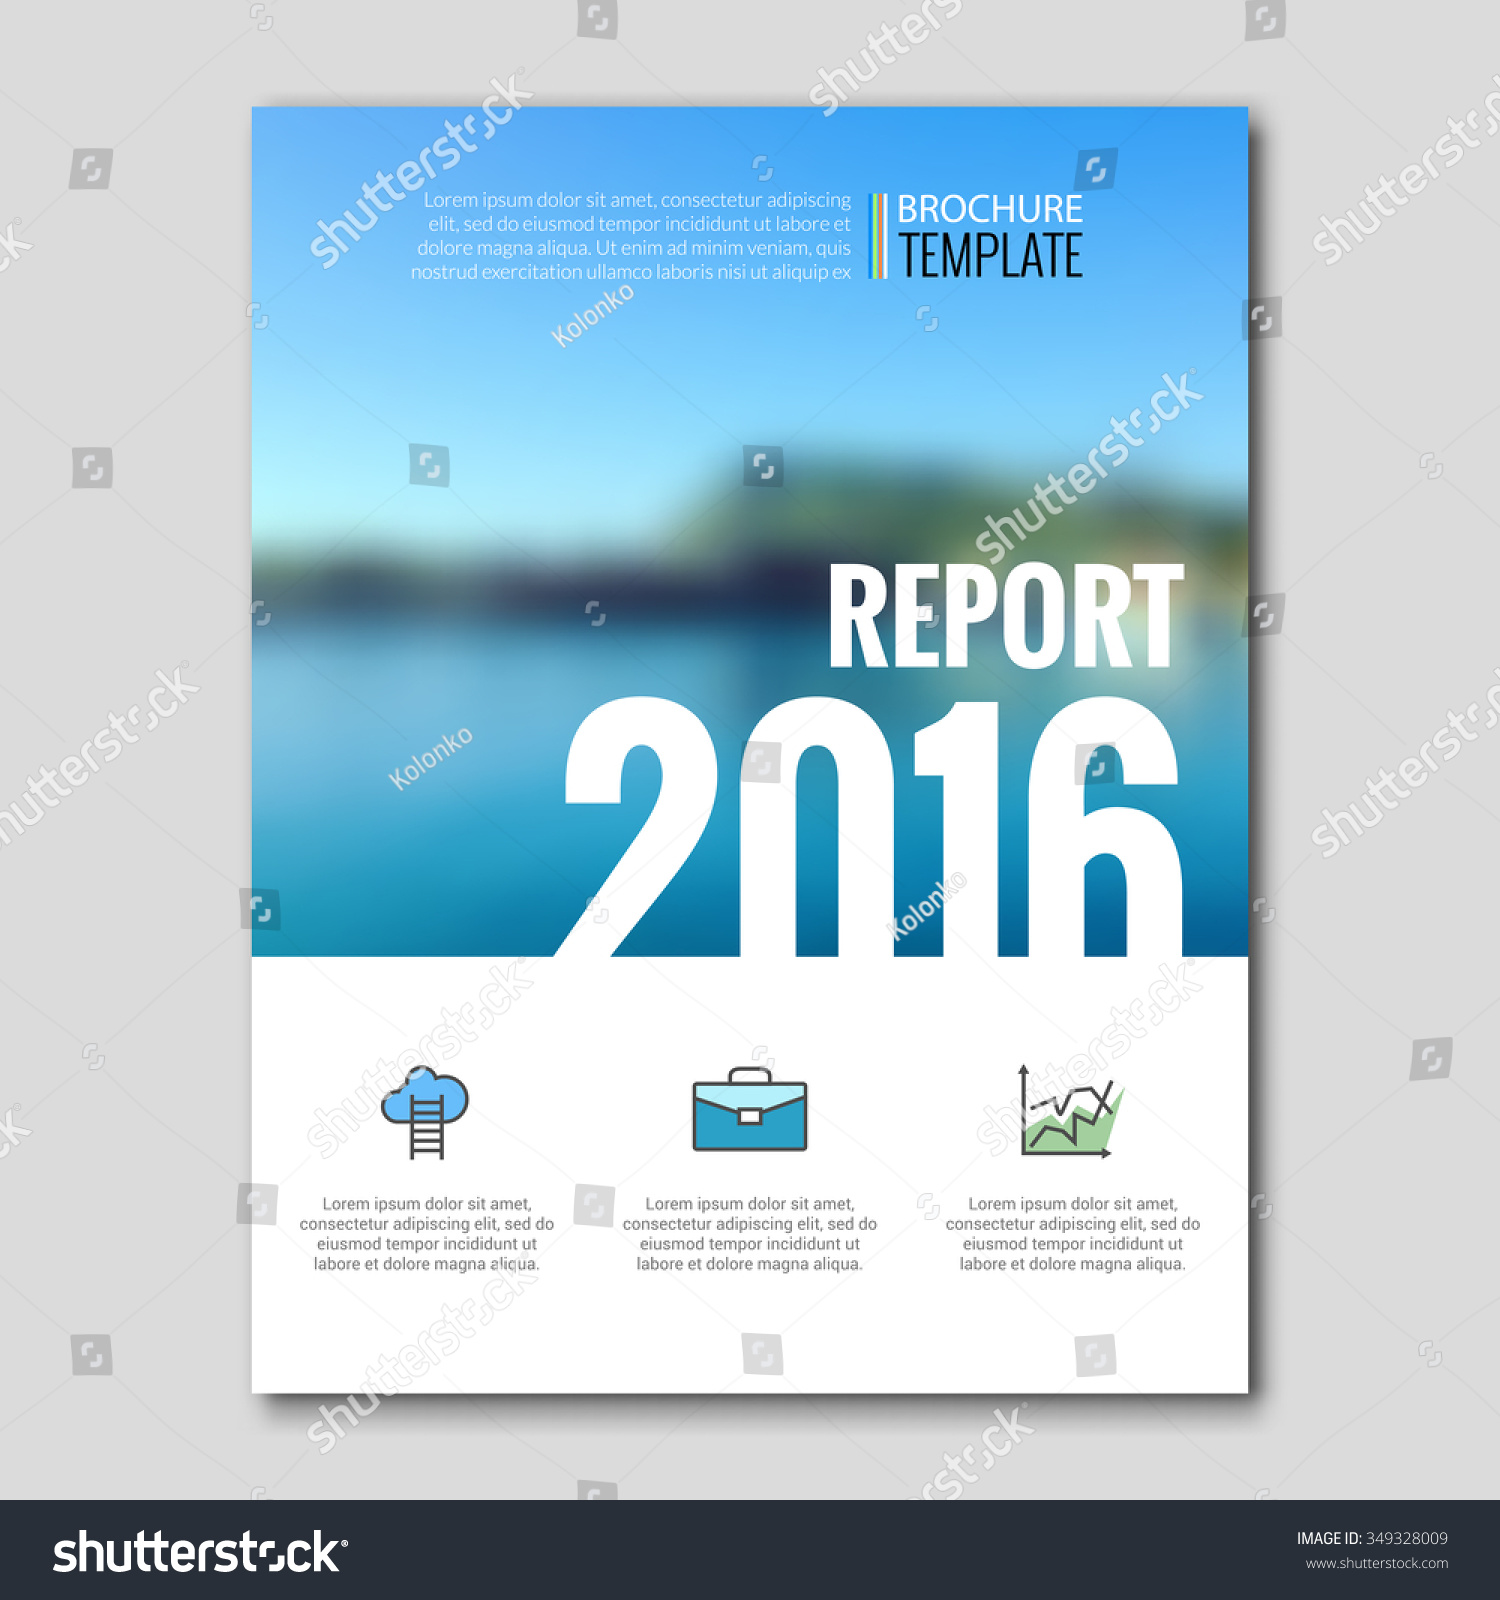 Business Templates Brochure Flyer Report Booklet Stock Vector - Template for brochure